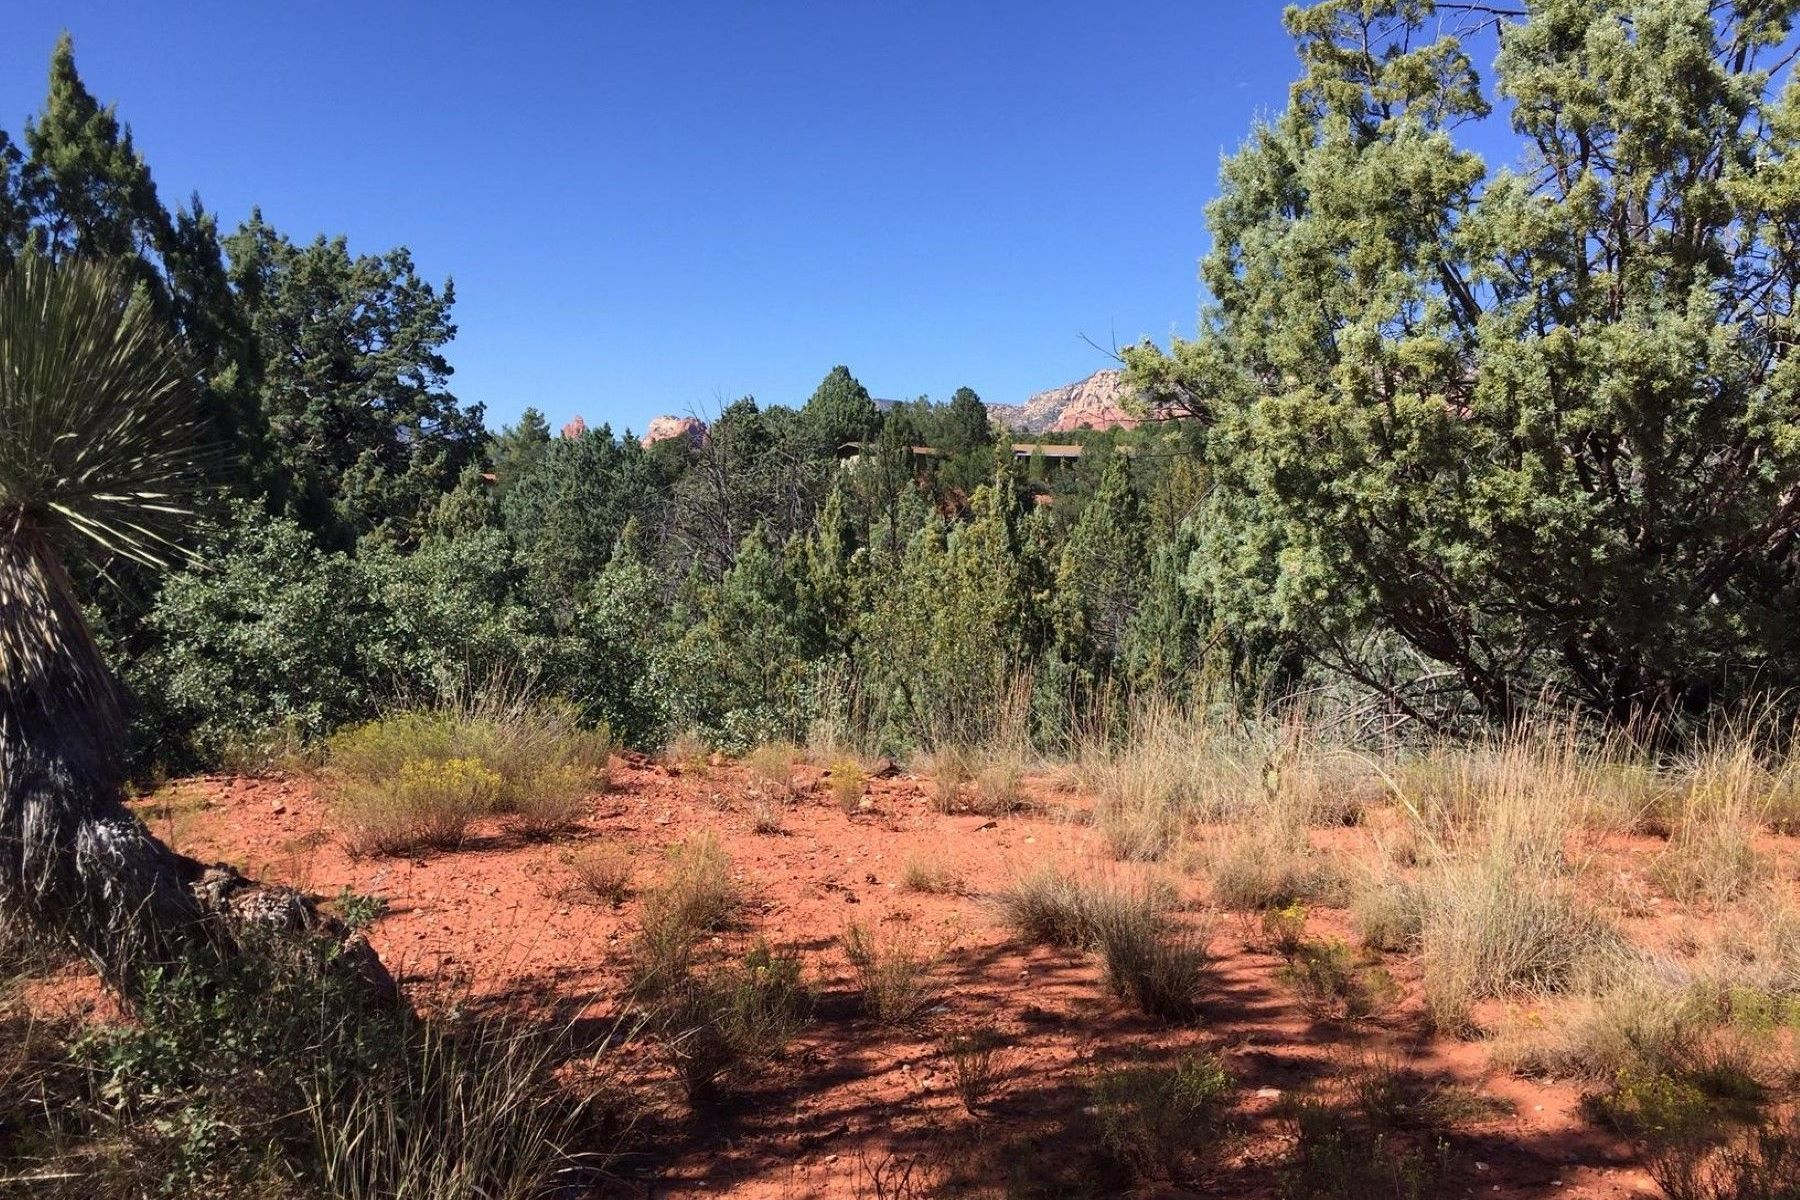 Land for Sale at Lovely lot backing fantastic red rock views 399 Canyon Drive, Sedona, Arizona, 86336 United States